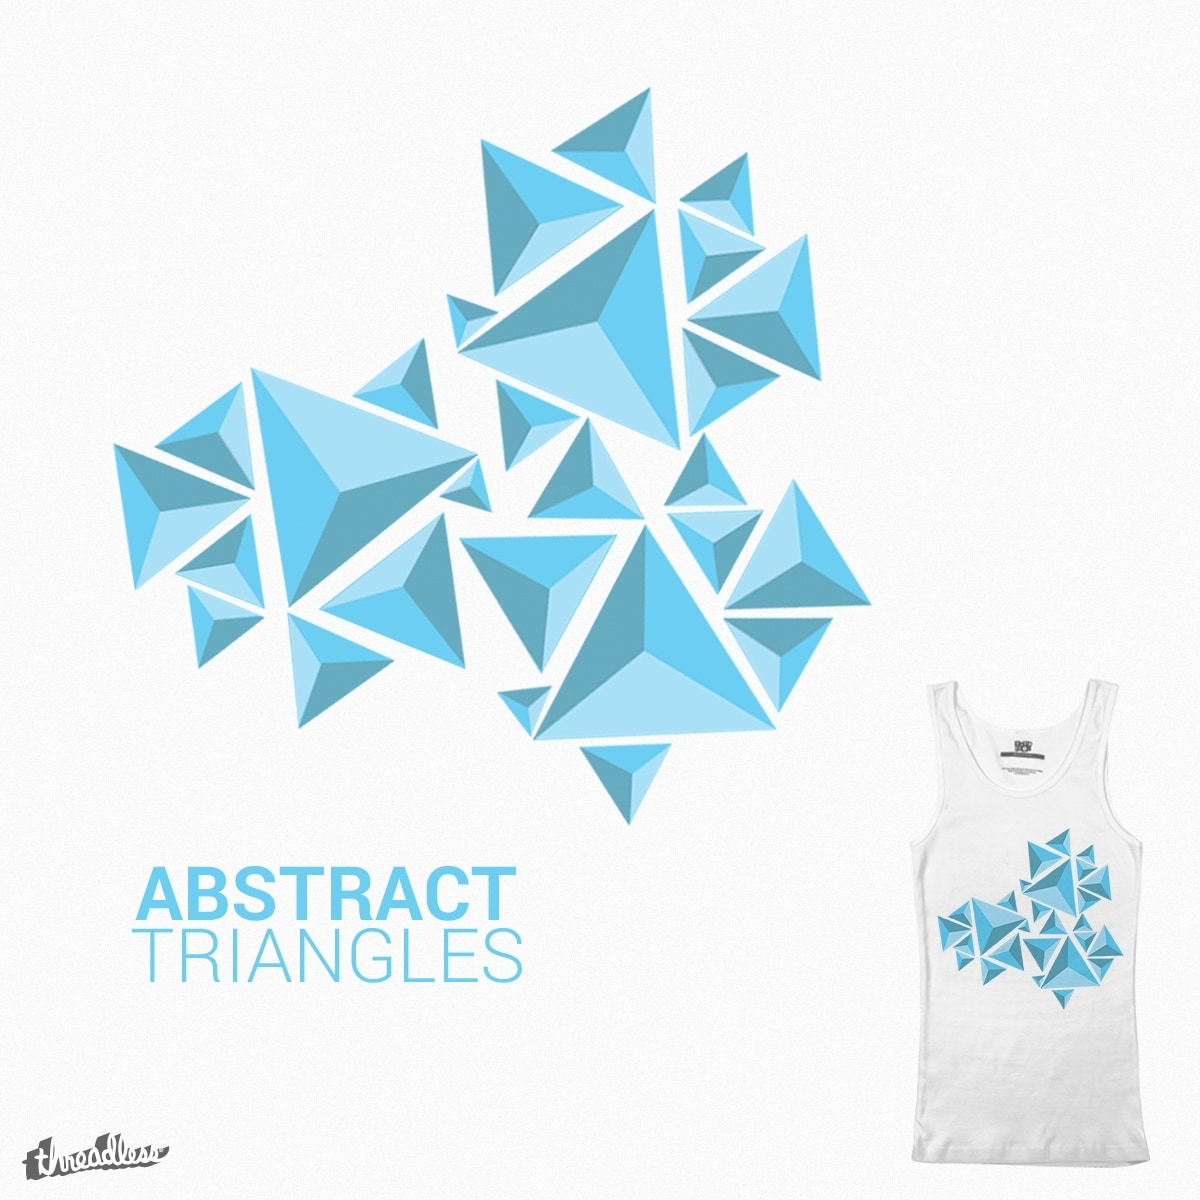 Score Abstract Triangles by BroPro on Threadless